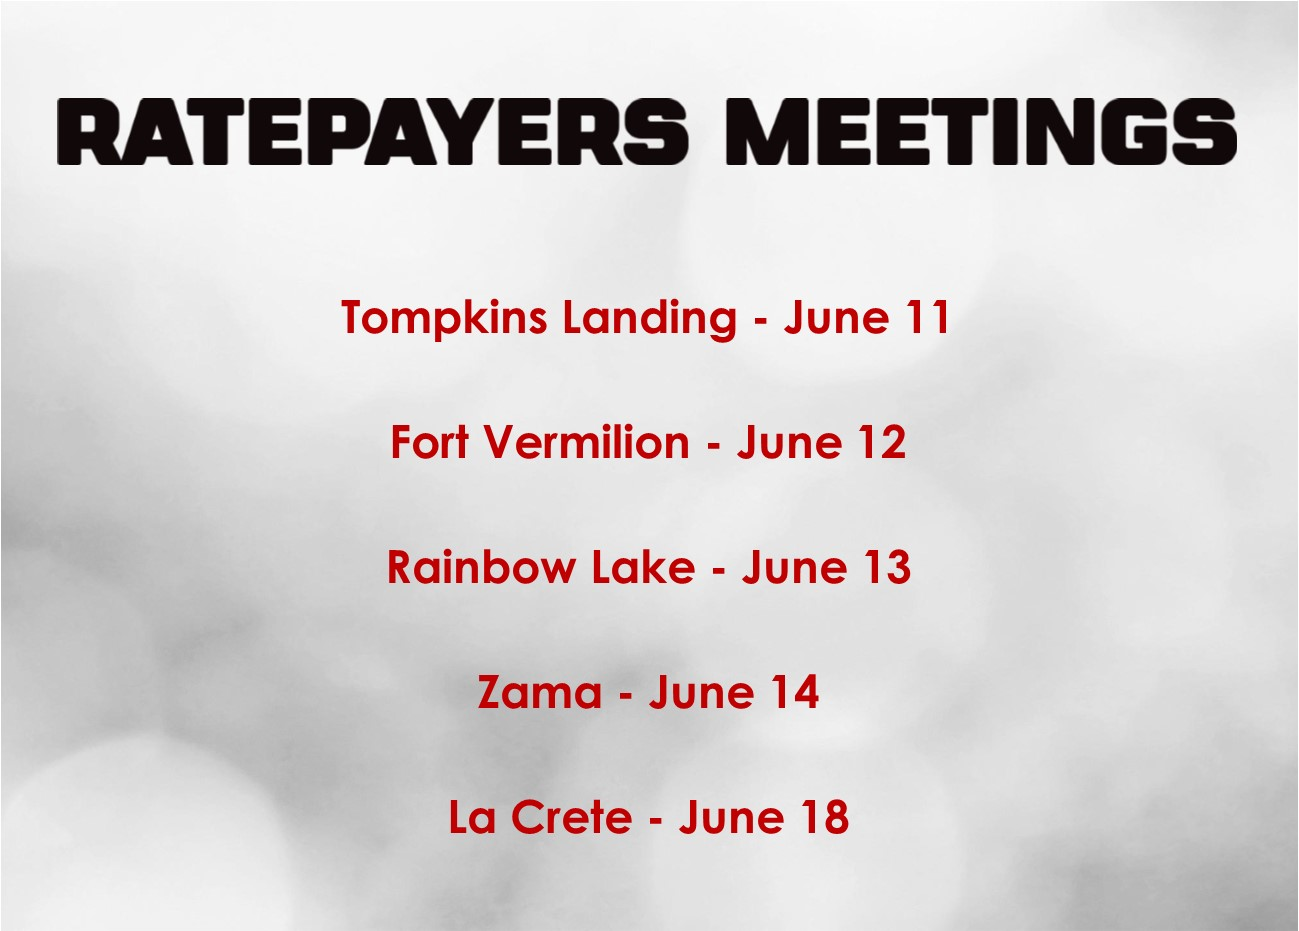 Ratepayers Meetings 2018